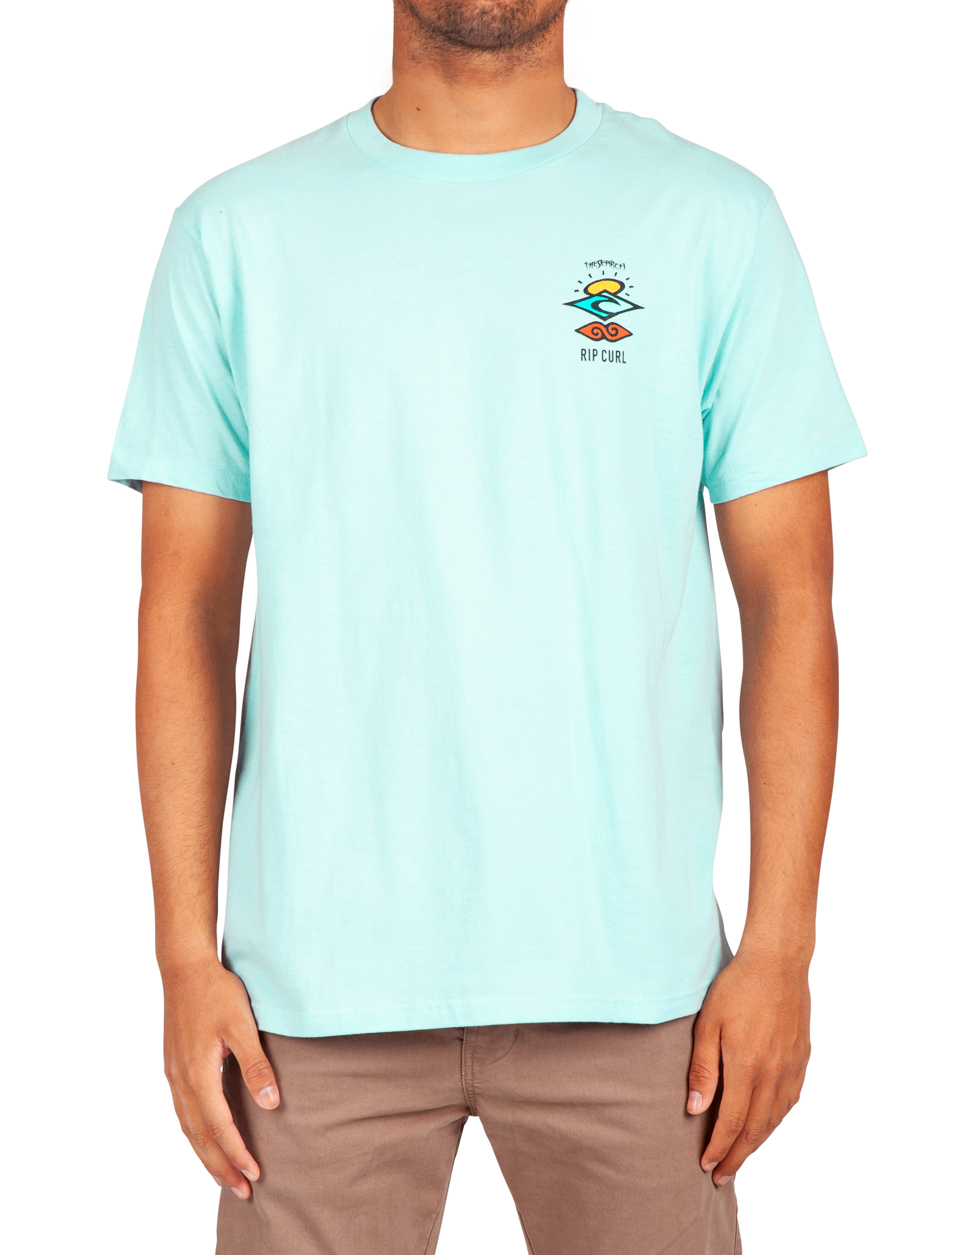 RIP CURL THE SEARCH LEGACY PREMIUM TEE